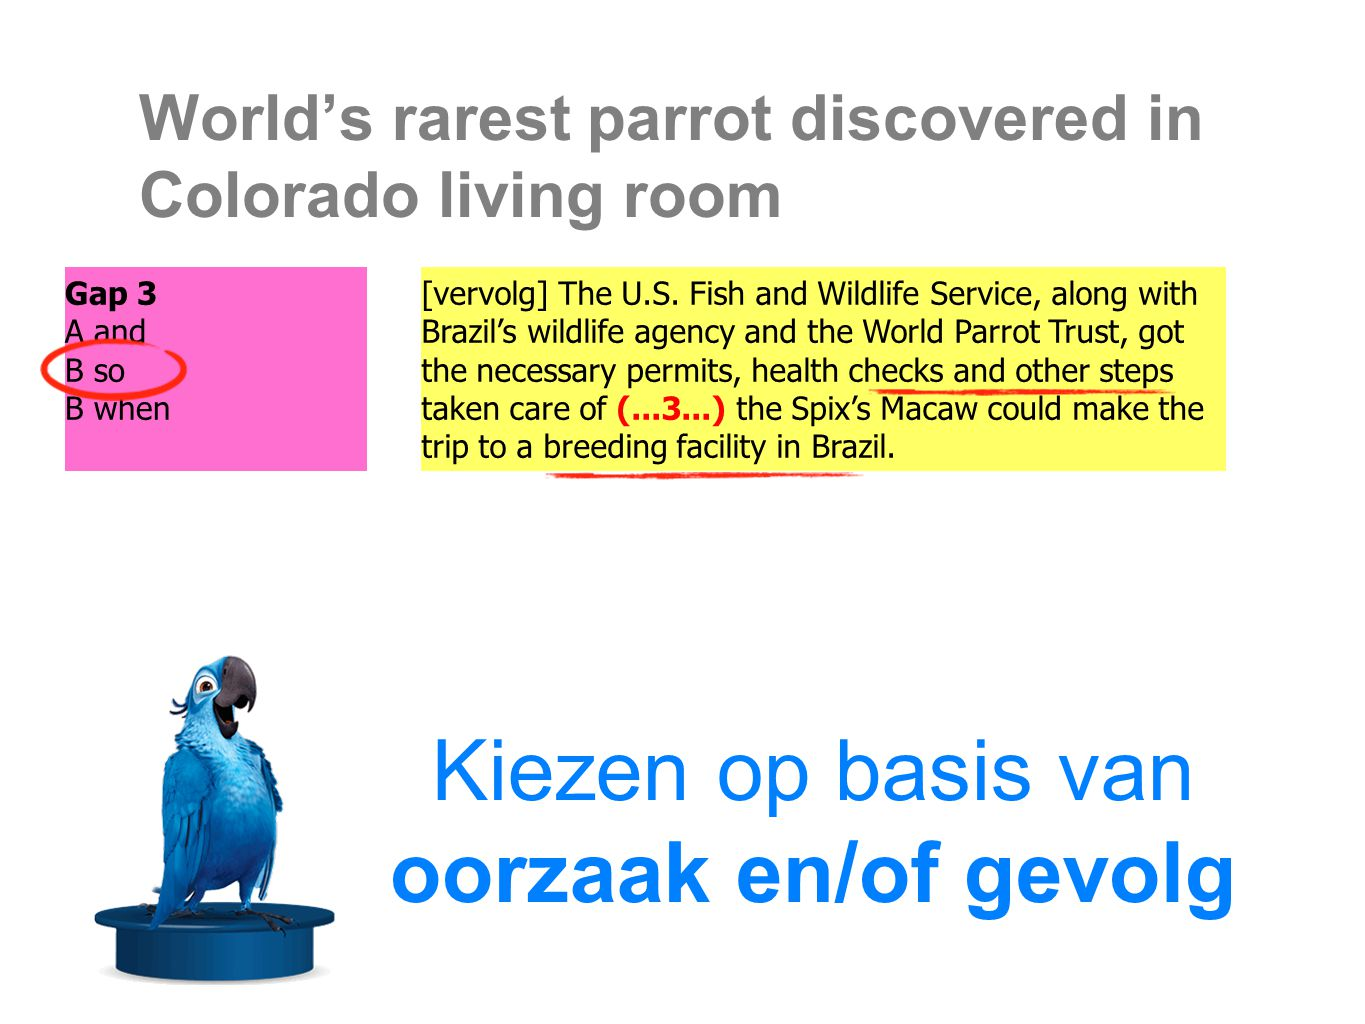 World's rarest parrot discovered in Colorado living room Of the tens of millions of parrots in cages around the world, we hear rumors about rare birds like this occasionally, but they (...4...) lead to discoveries as critically important as this Spix s Macaw, said James Gilardi, Ph.D., director of the World Parrot Trust.